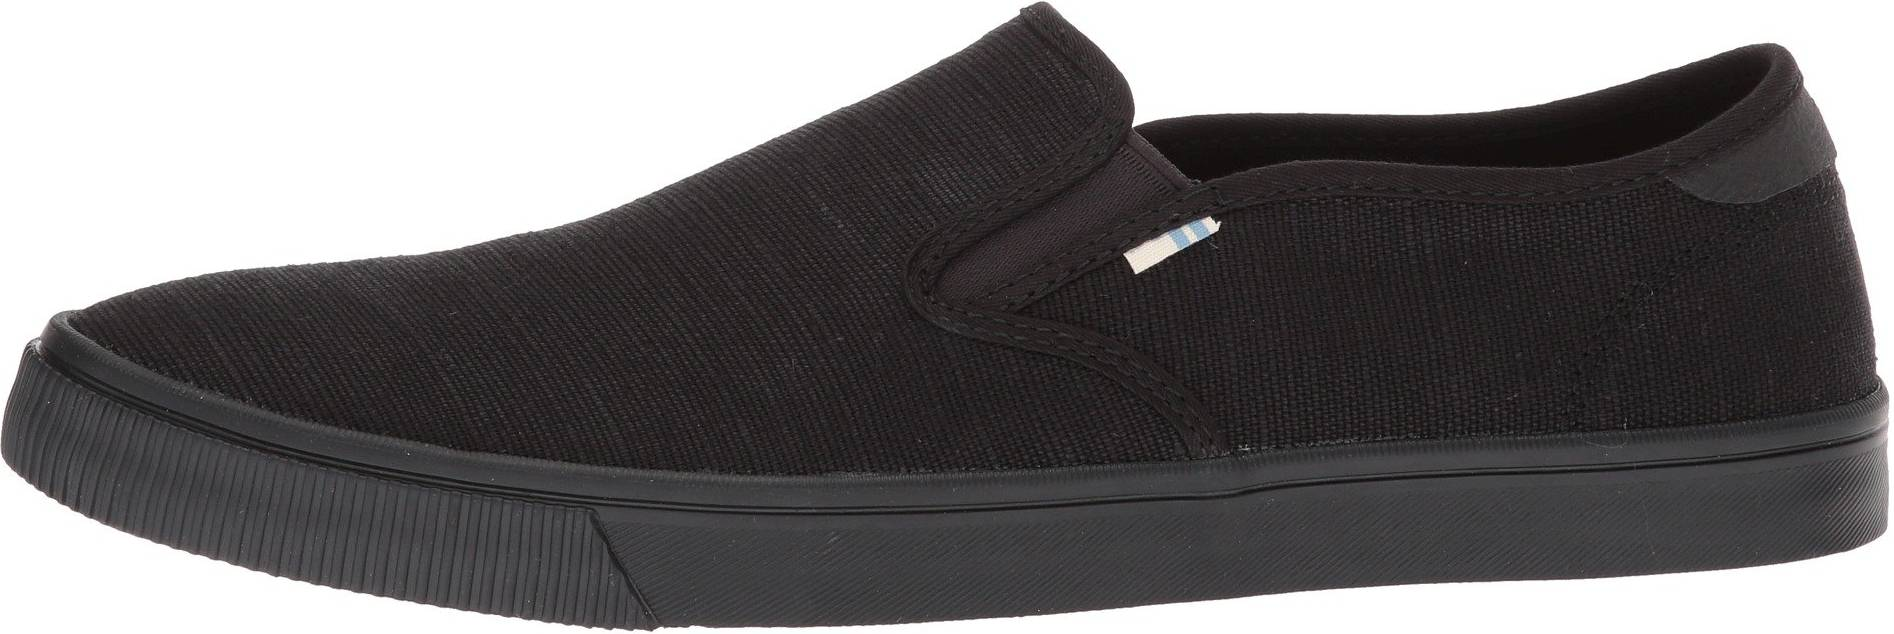 Only $20 + Review of TOMS Baja Slip-On